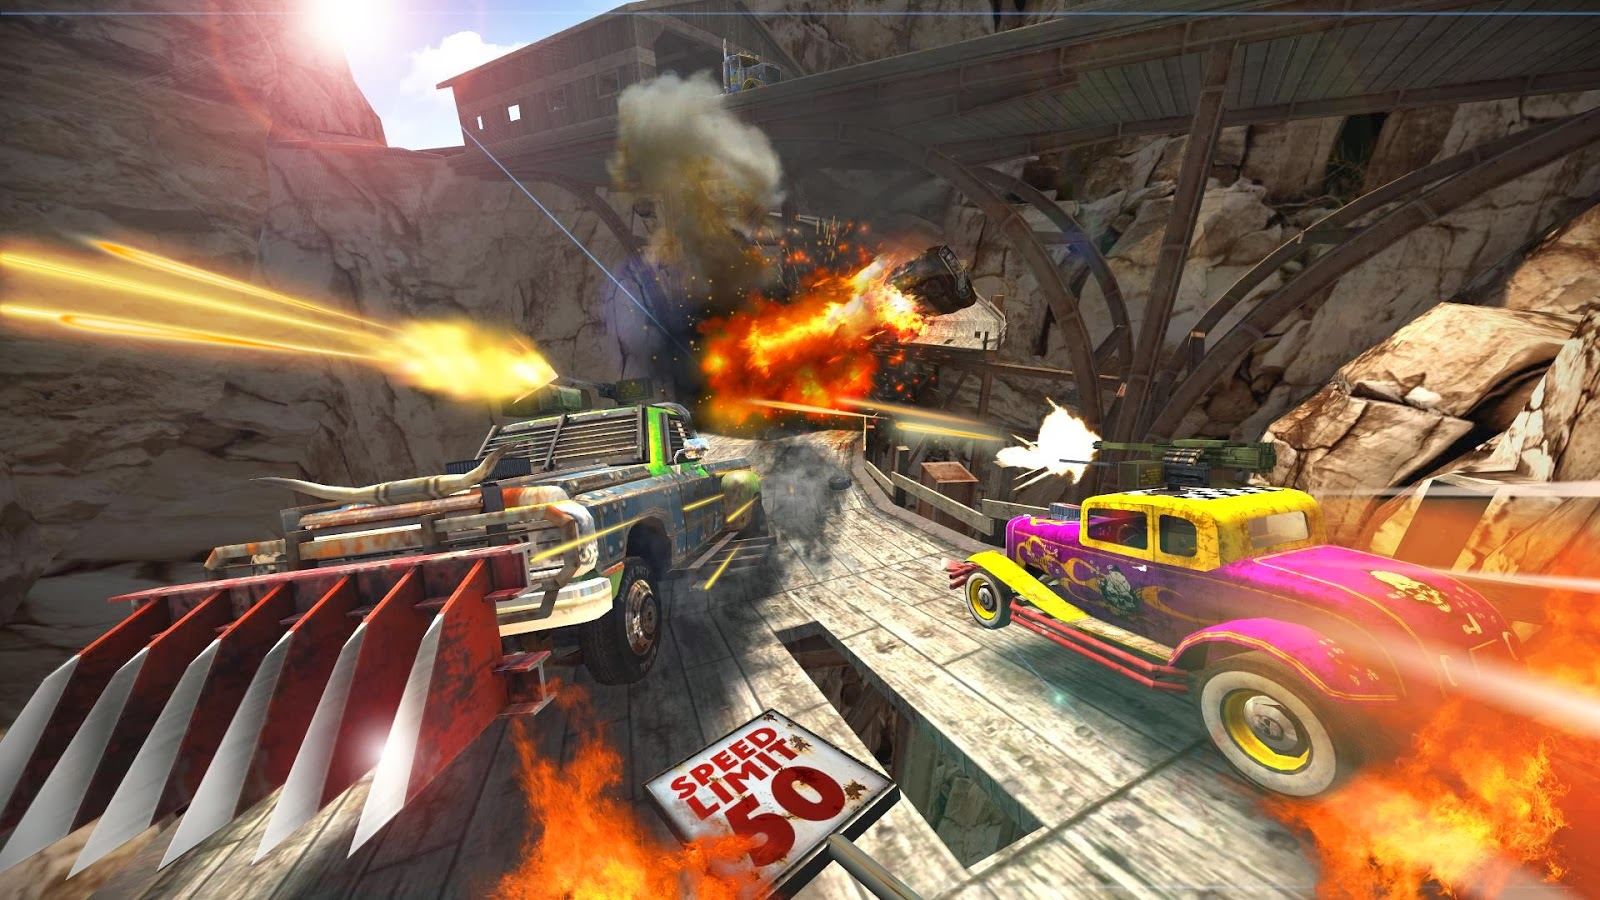 ACTION HERO Death Tour- Racing Action Game